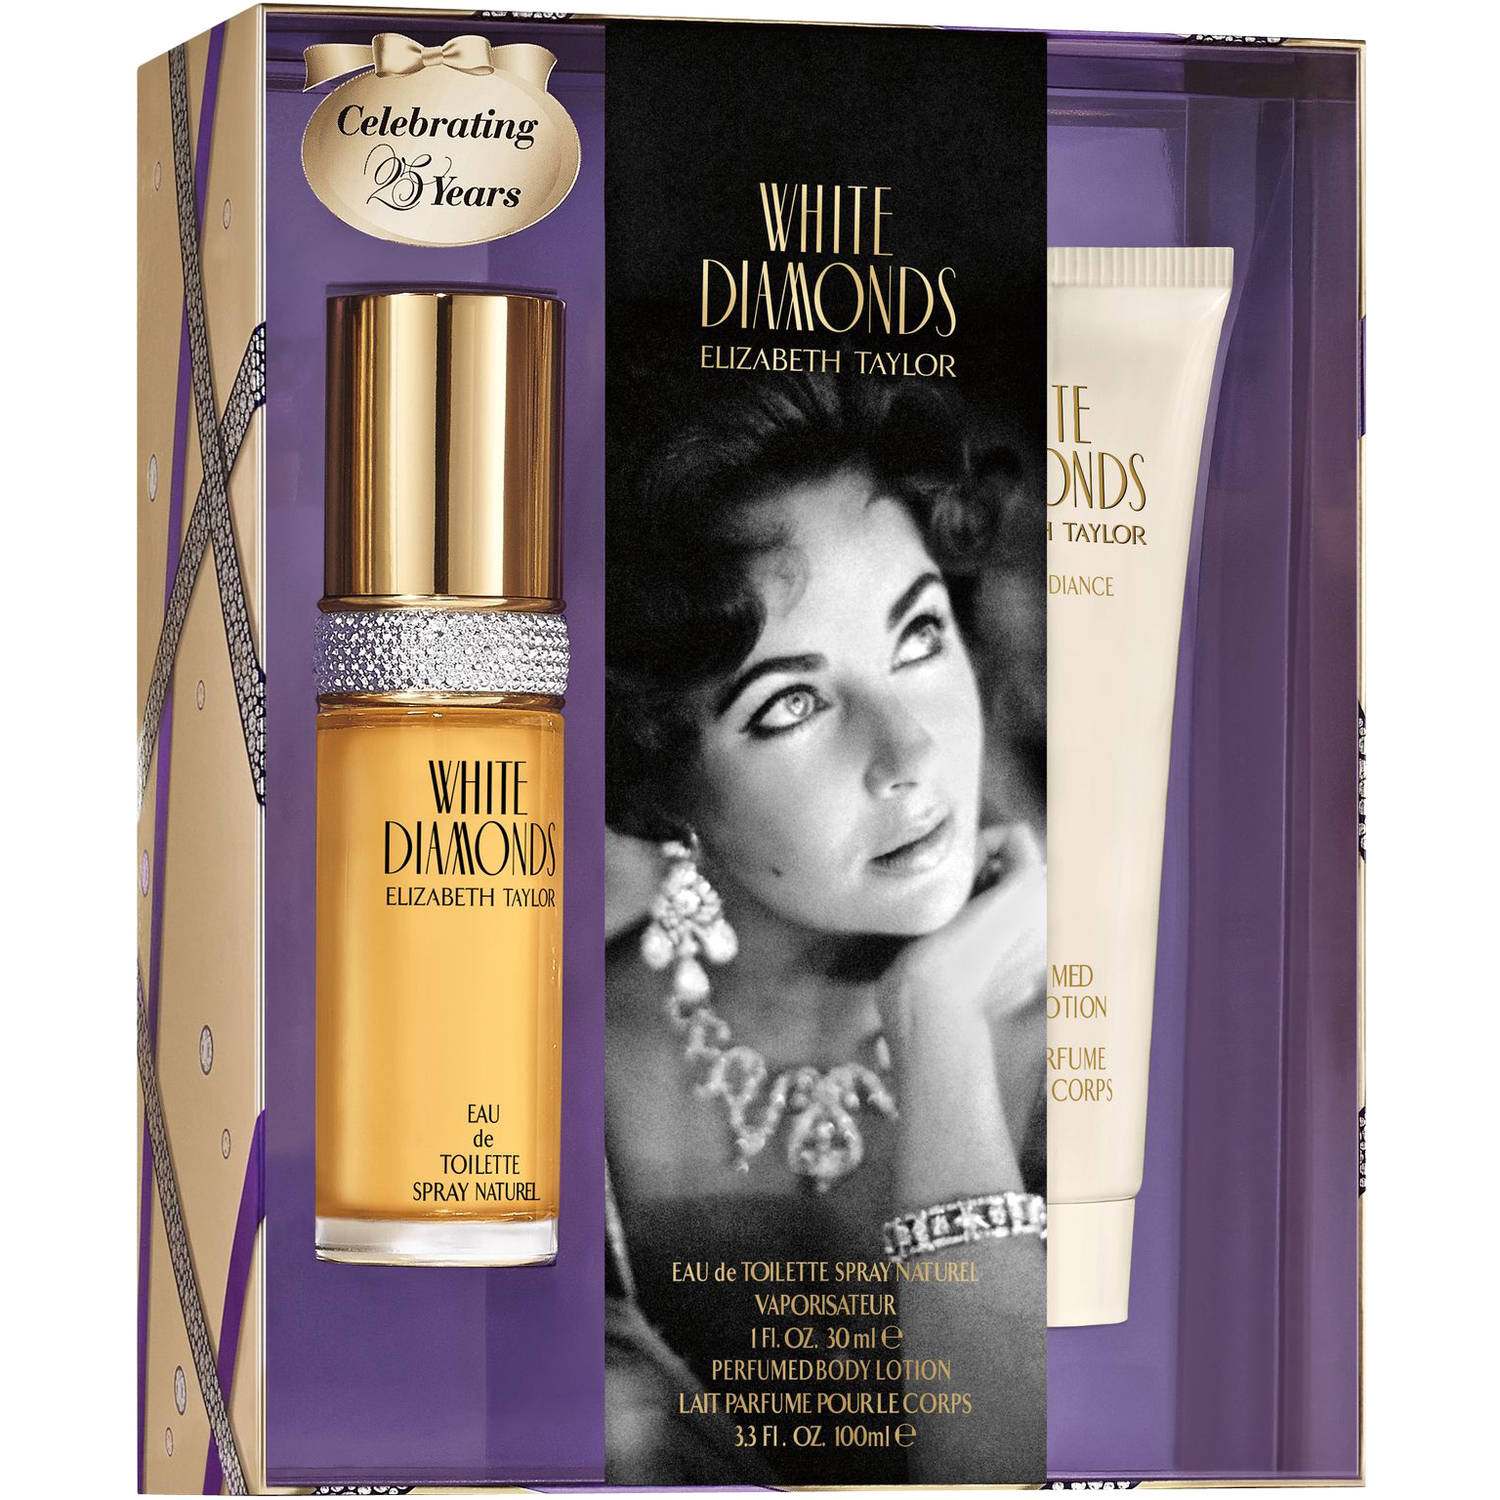 Elizabeth Taylor White Diamonds 2-Piece Perfume Gift Set